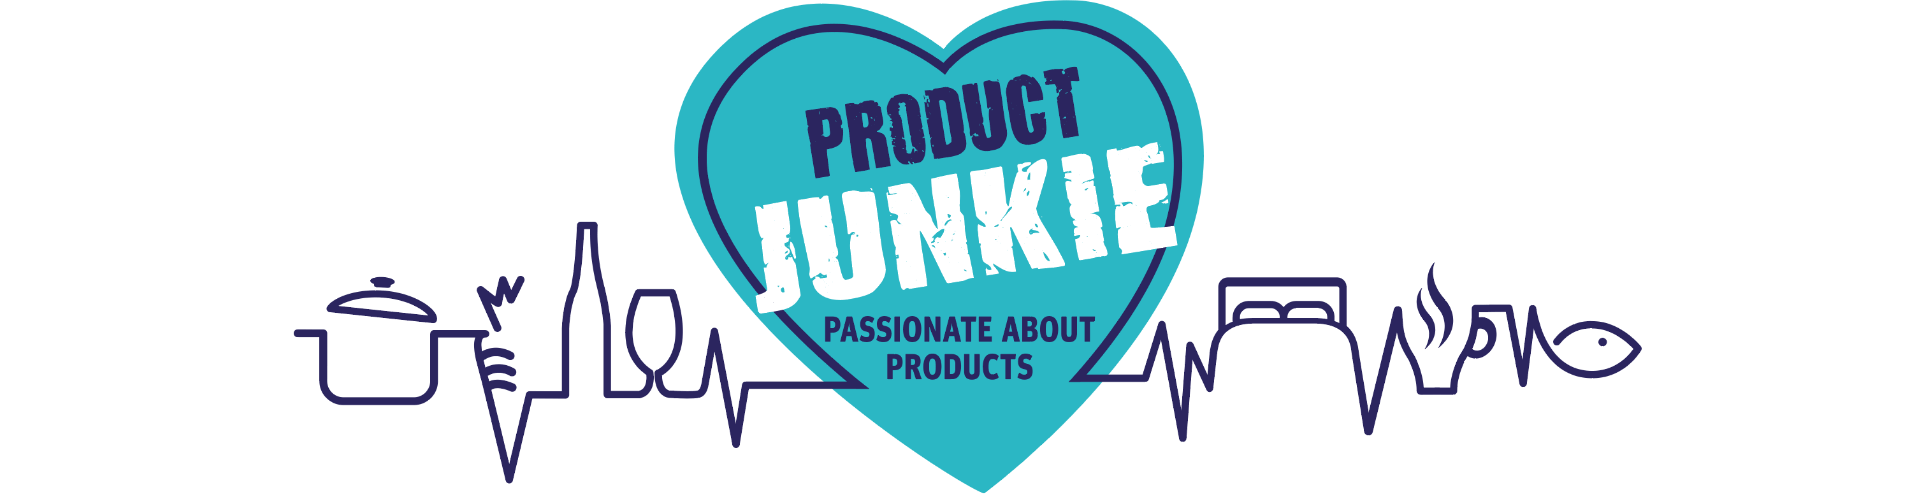 Product Junkie Logo Design By Louise Russell Design